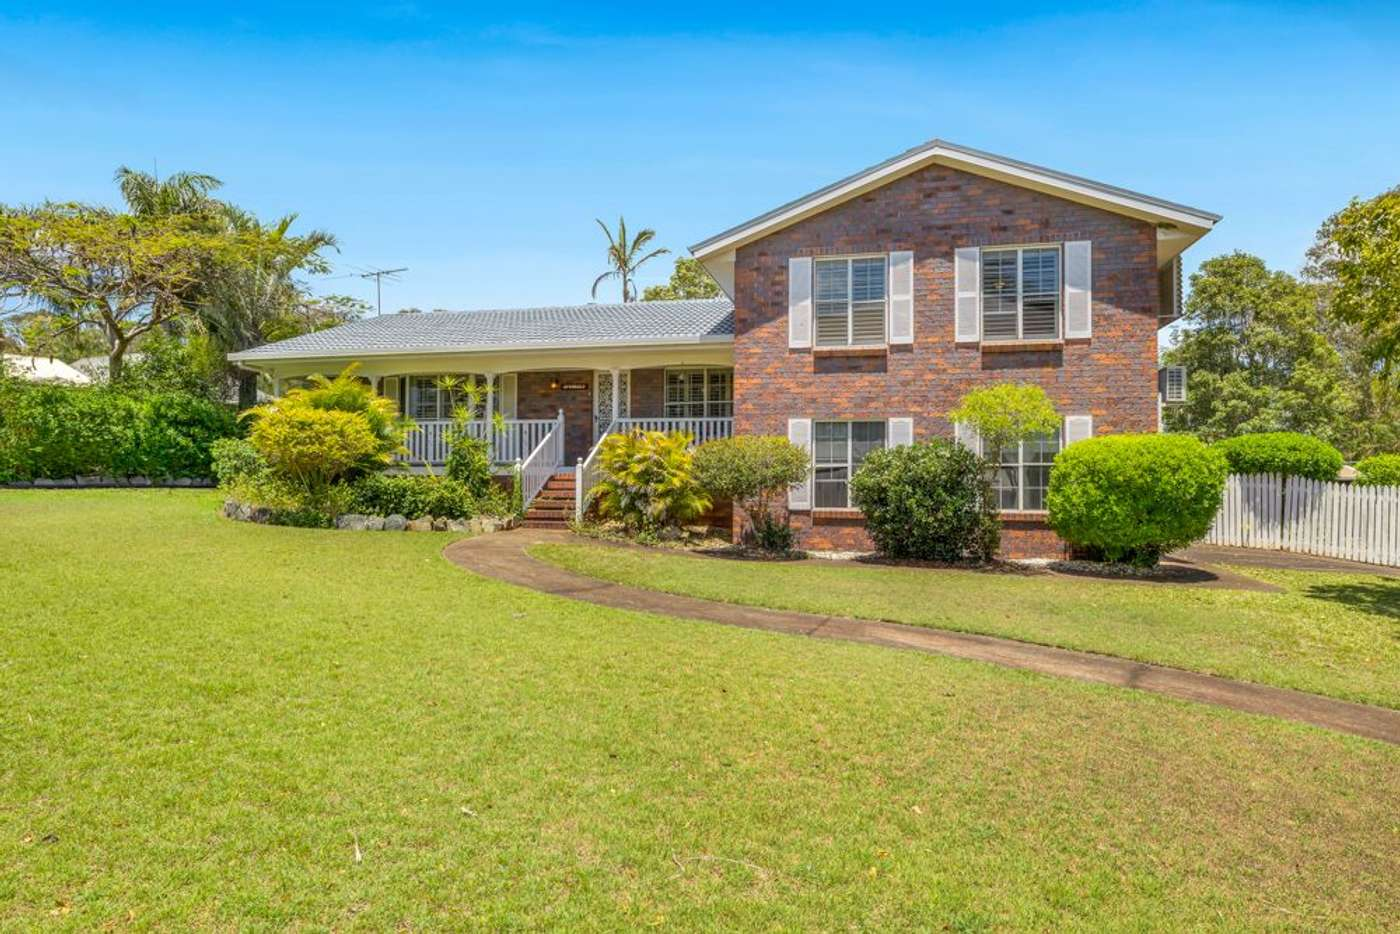 Main view of Homely house listing, 10 Stratford Court, Birkdale QLD 4159